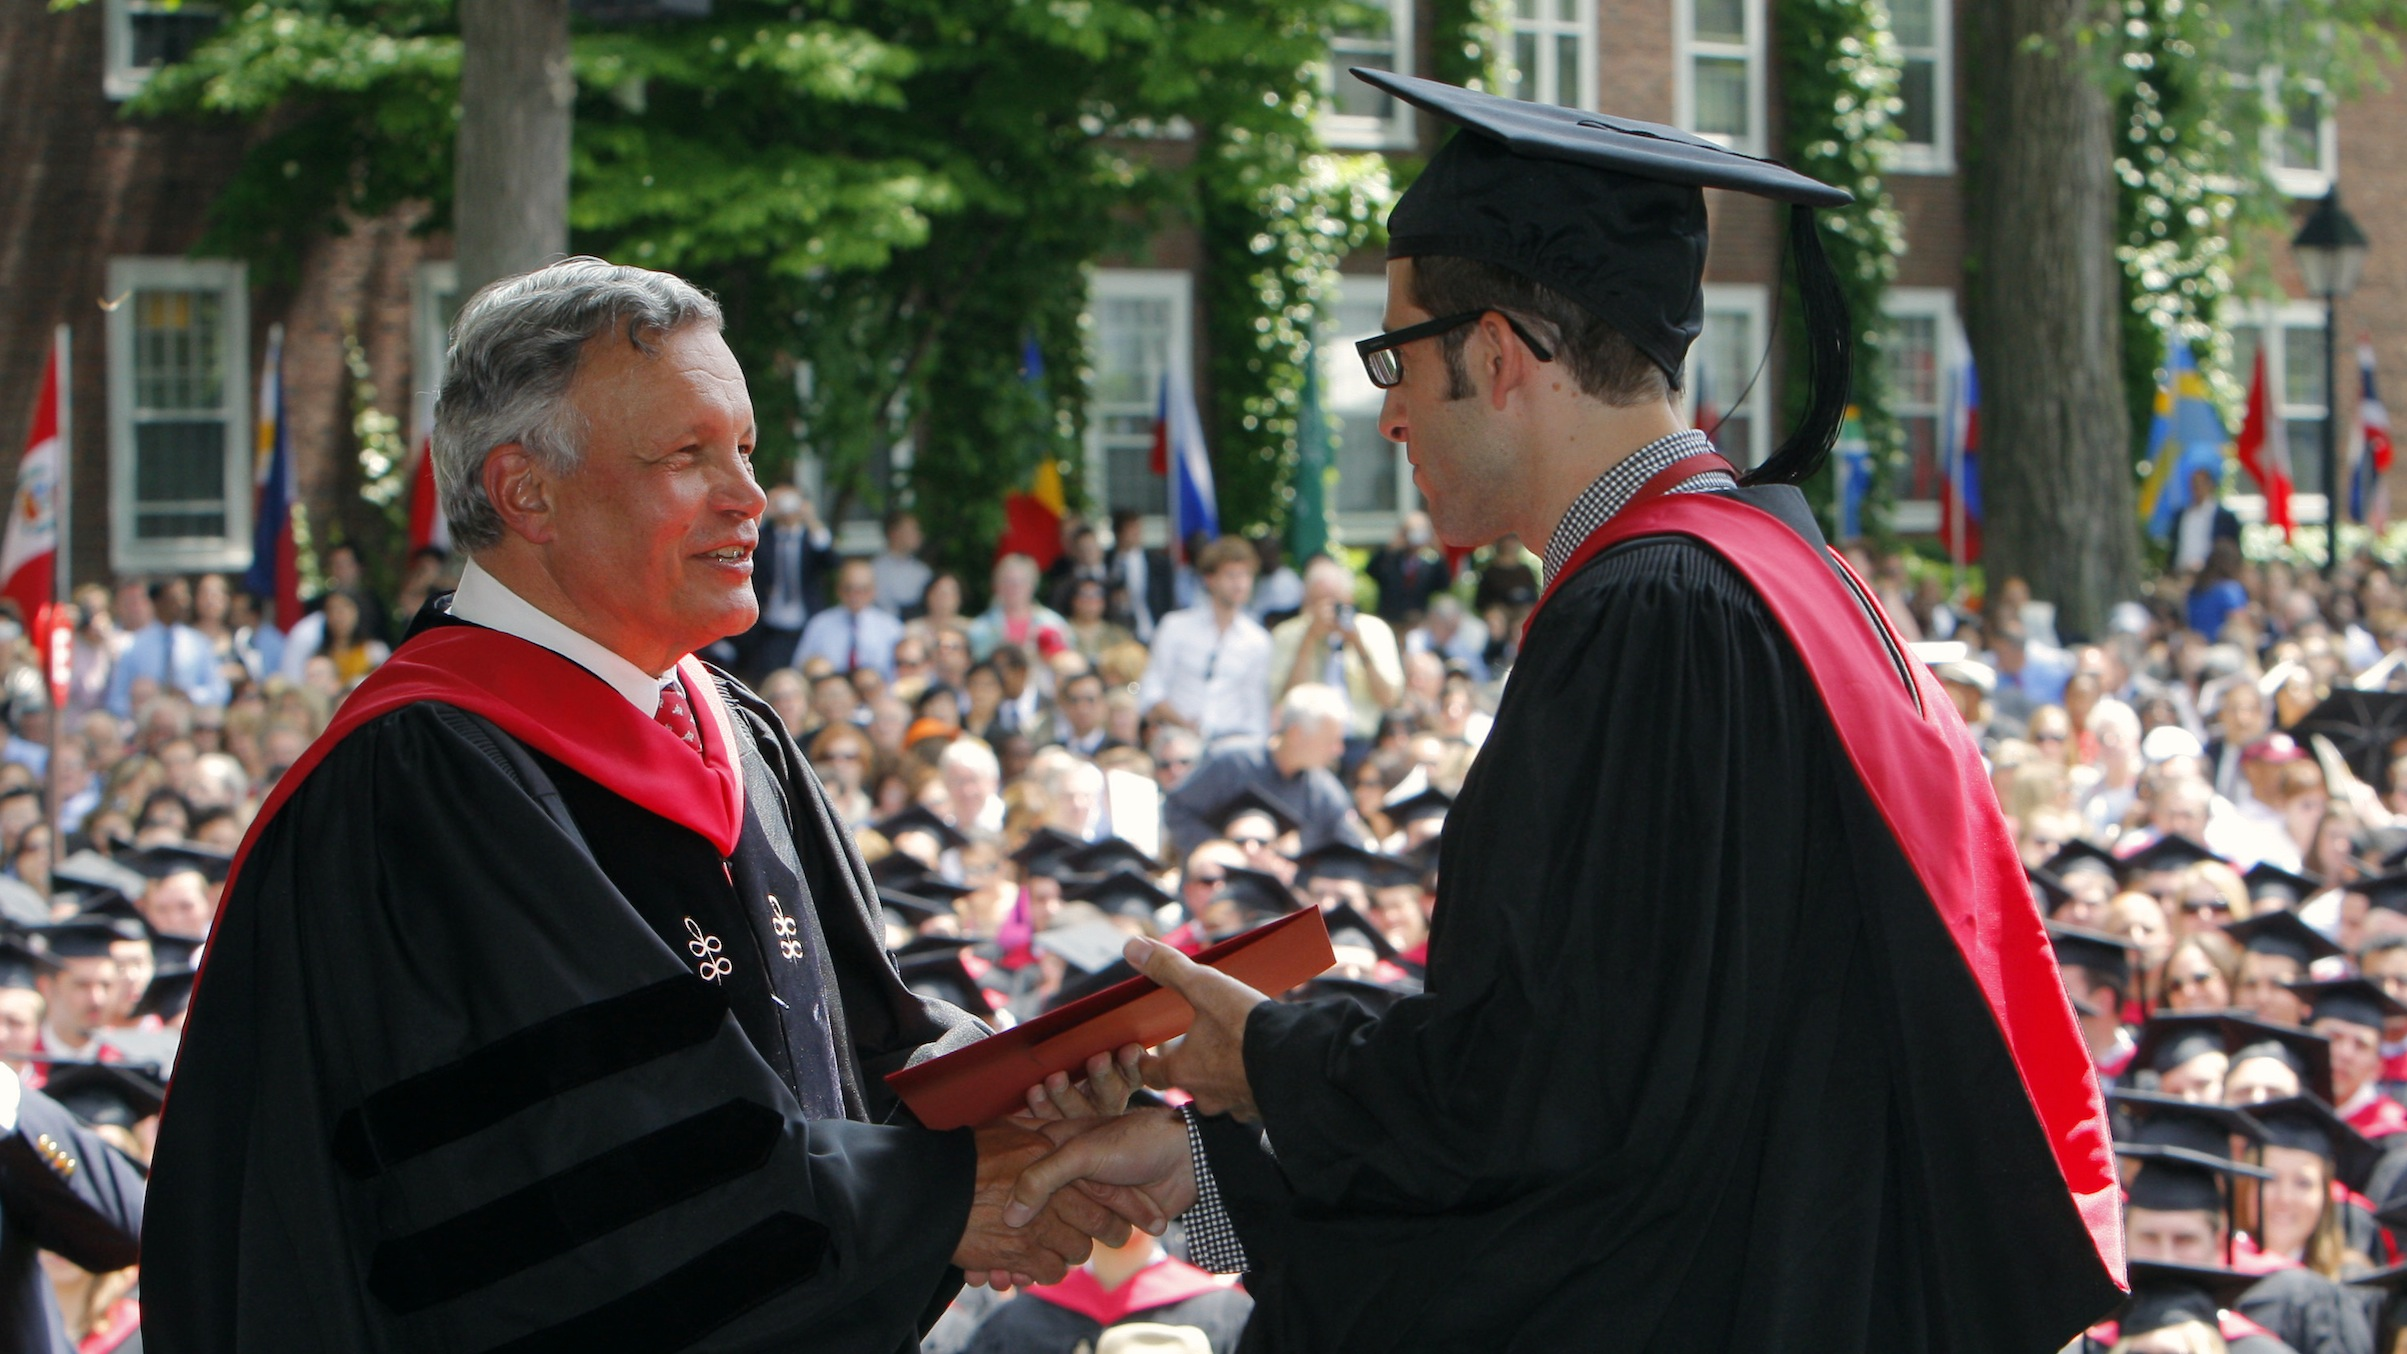 Dean Jay Light (L) presents a student with his diploma at the Harvard Business School's graduation ceremonies in Boston, Massachusetts following Harvard University's 358th Commencement June 4, 2009.    REUTERS/Brian Snyder   (UNITED STATES EDUCATION) - RTR24AAL